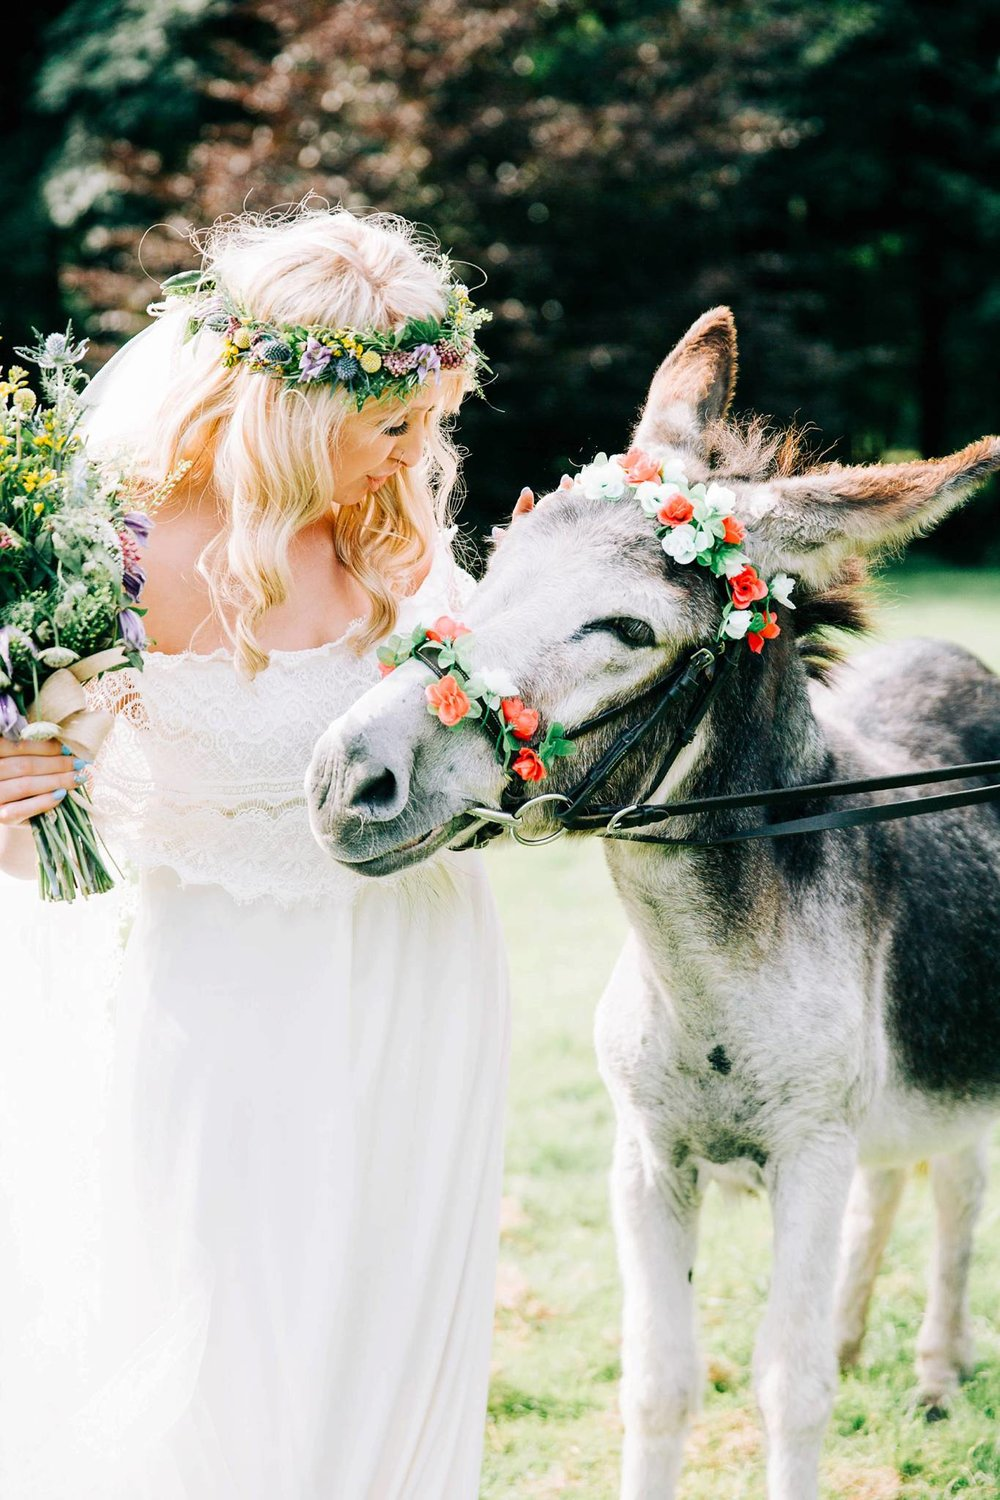 Natural wedding photography Manchester - Clare Robinson Photography_0011.jpg